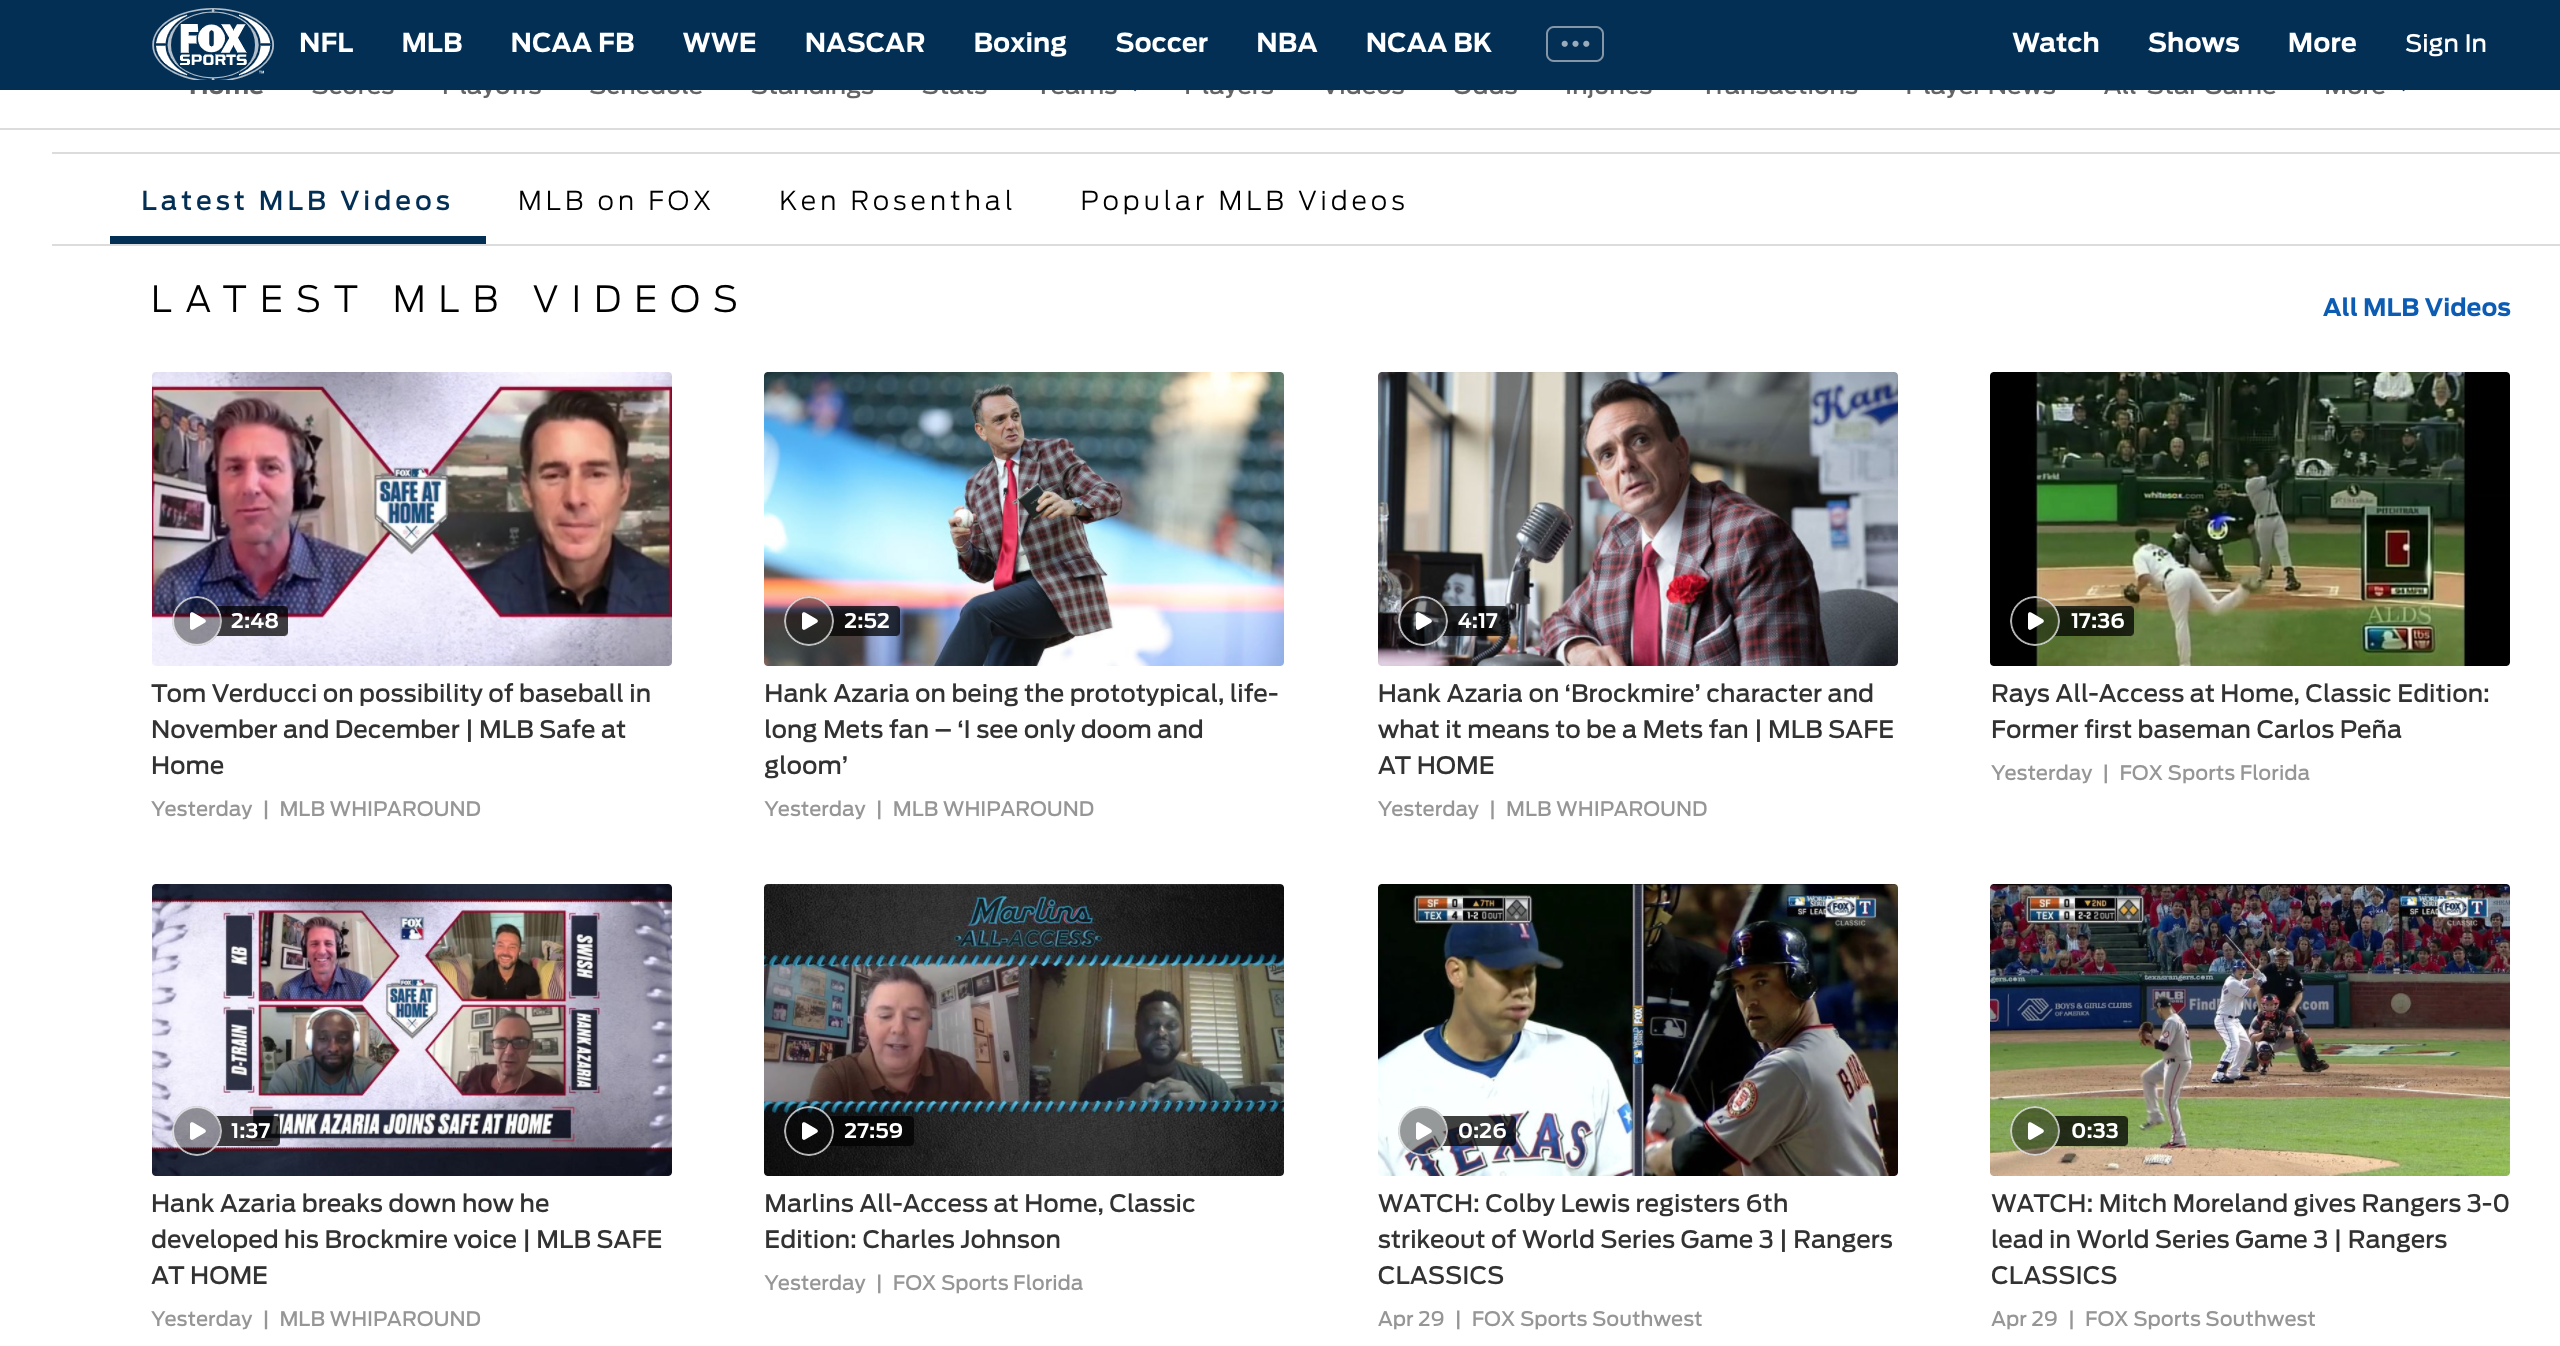 Fox Sports now creating memorable domains to help customers find the content they want